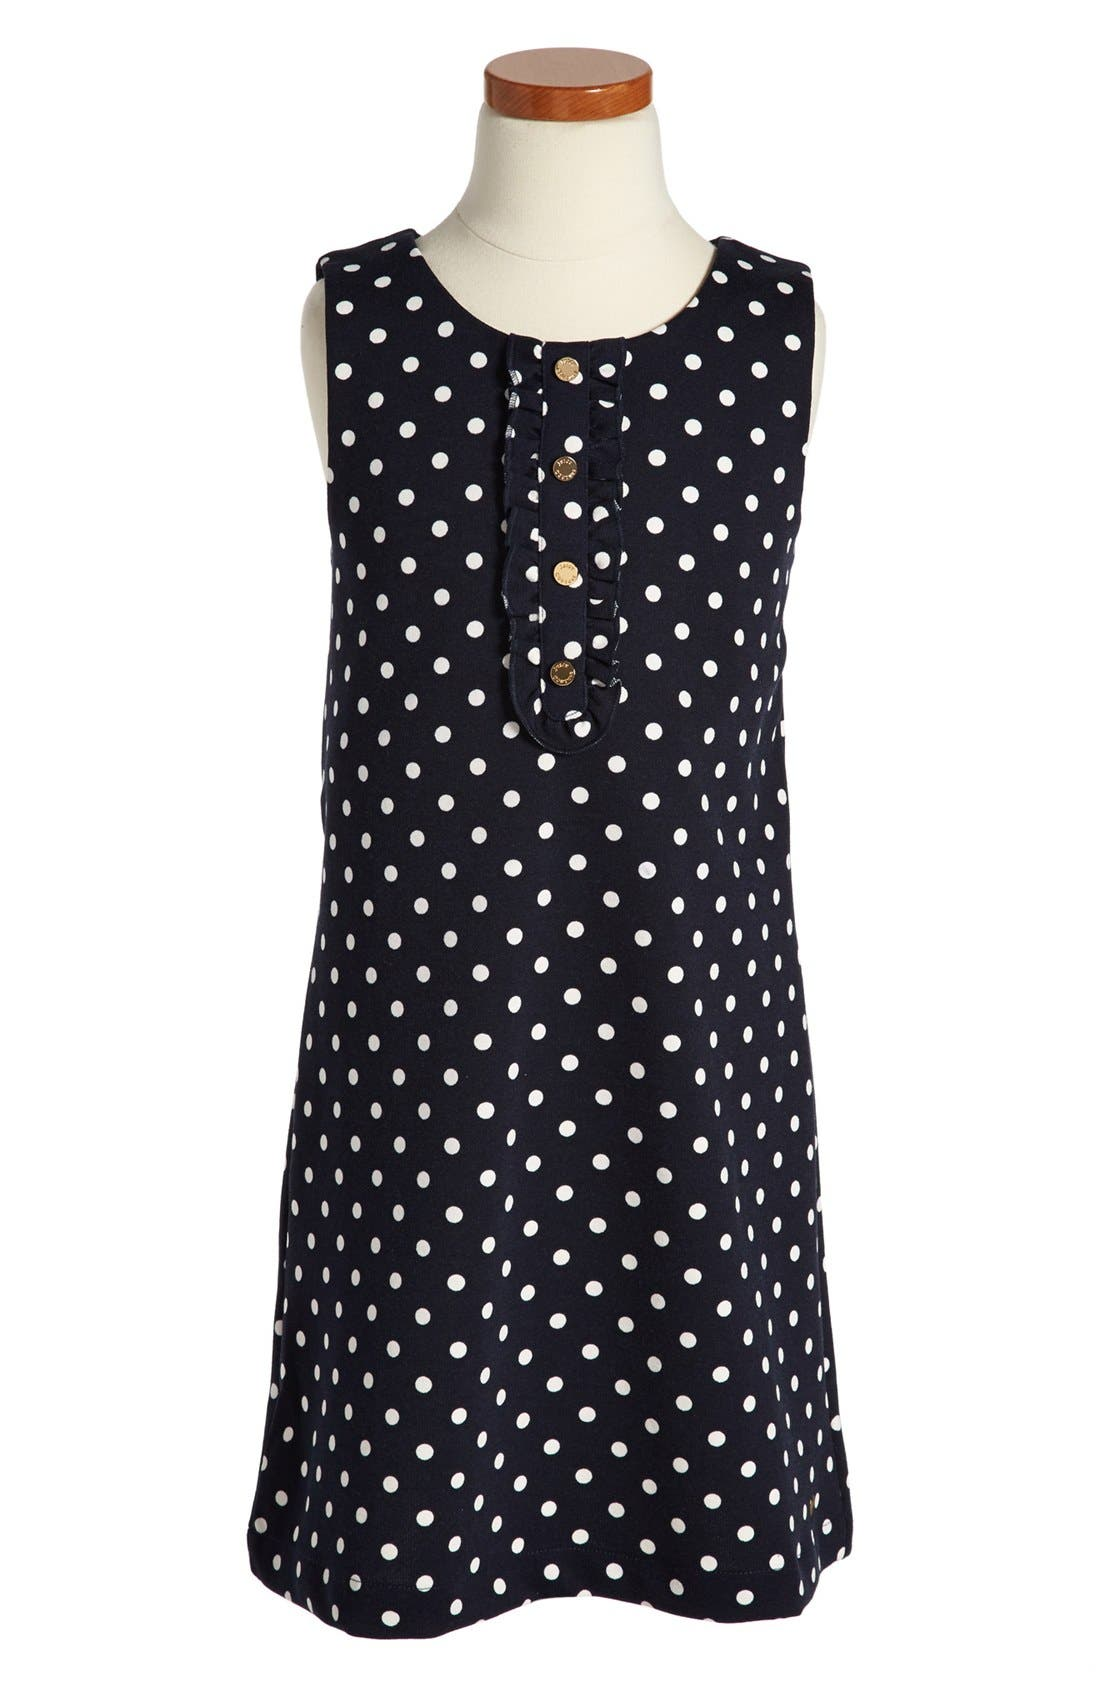 Alternate Image 1 Selected - Juicy Couture Sleeveless Dress (Toddler Girls, Little Girls & Big Girls)